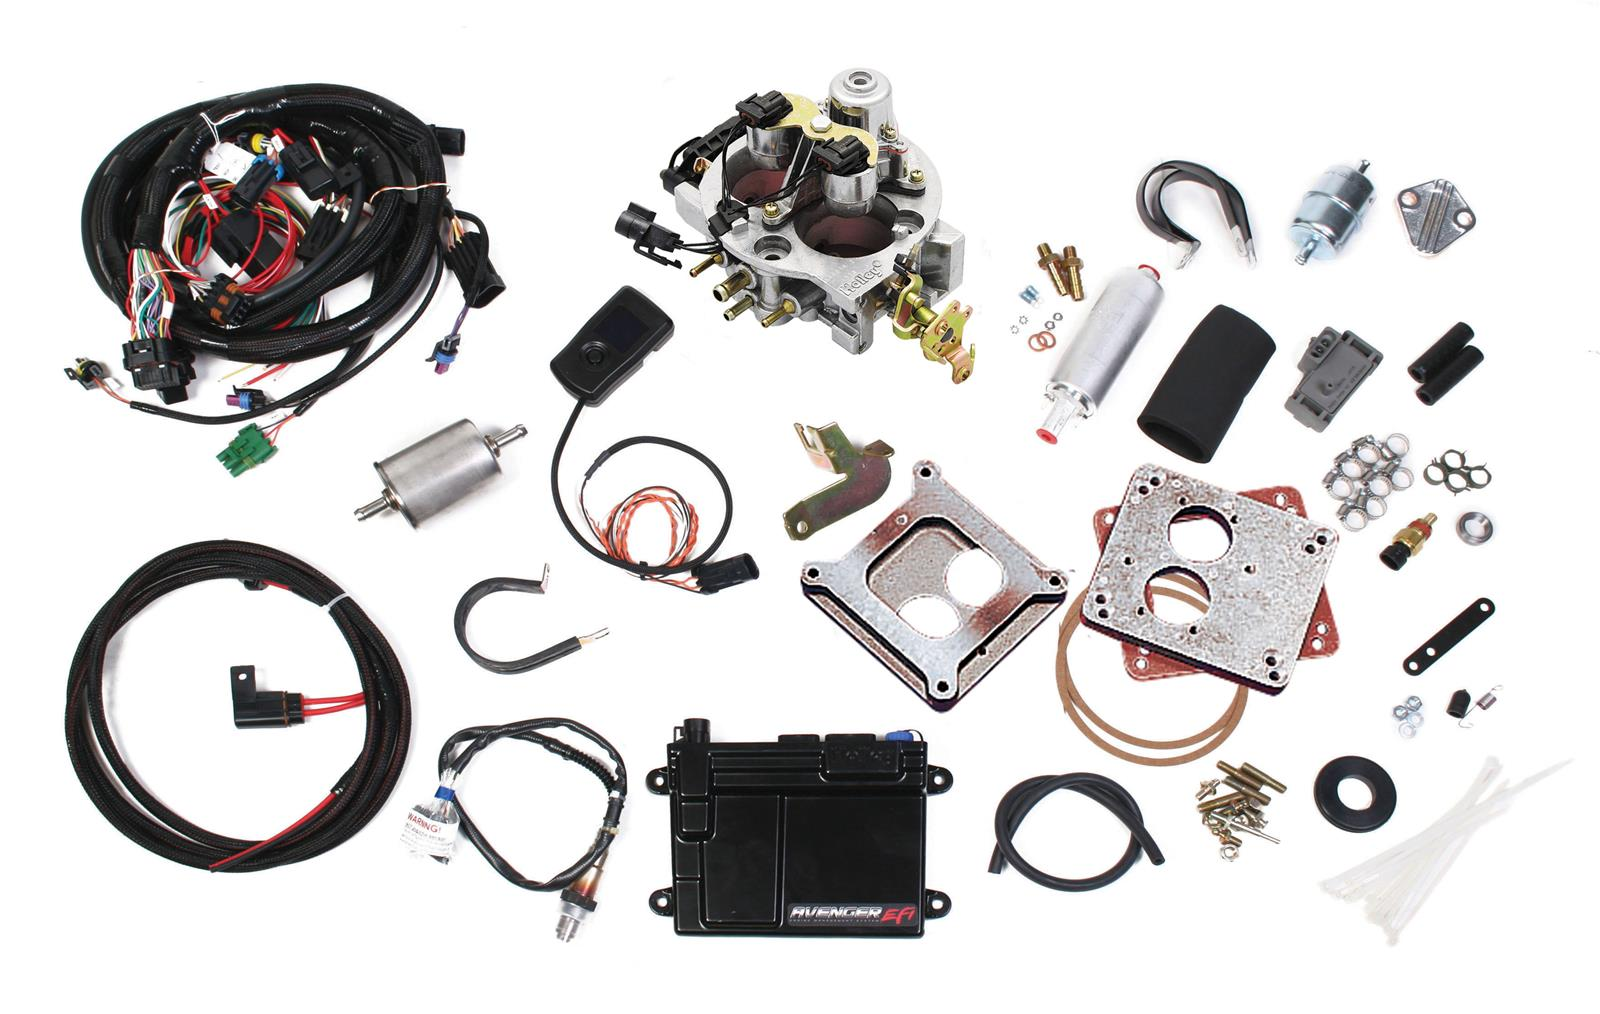 hight resolution of holley avenger efi engine management systems 550 200 free also with camaro tbi wiring additionally holley avenger efi engine management systems 550 200 free